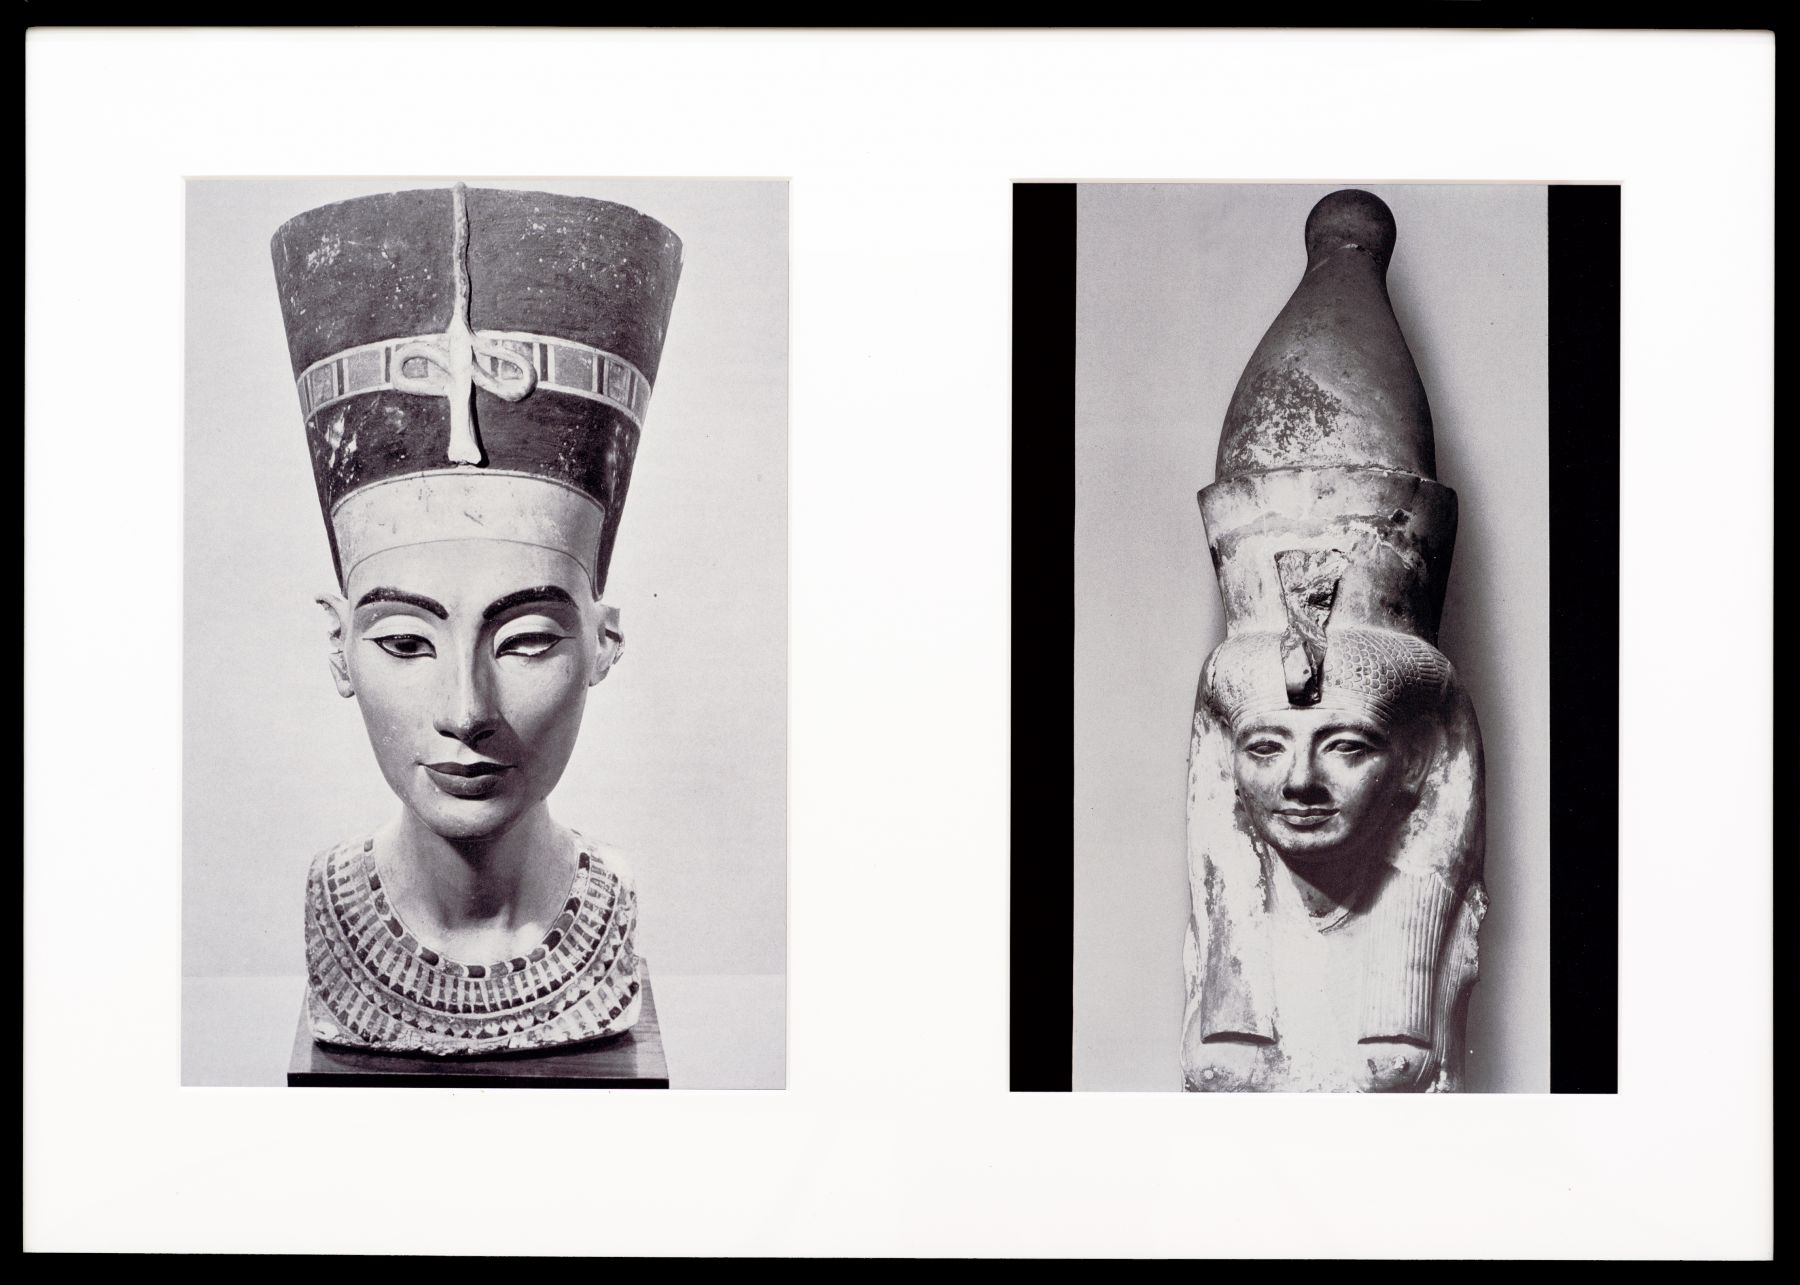 Miscegenated Family Album (Sibling Rivalry) L: Nefertiti; R: Nefertiti's sister, Mutnedjmet, 1980/1994, Cibachrome prints, 26h x 37w in (66.04h x 93.98w cm)